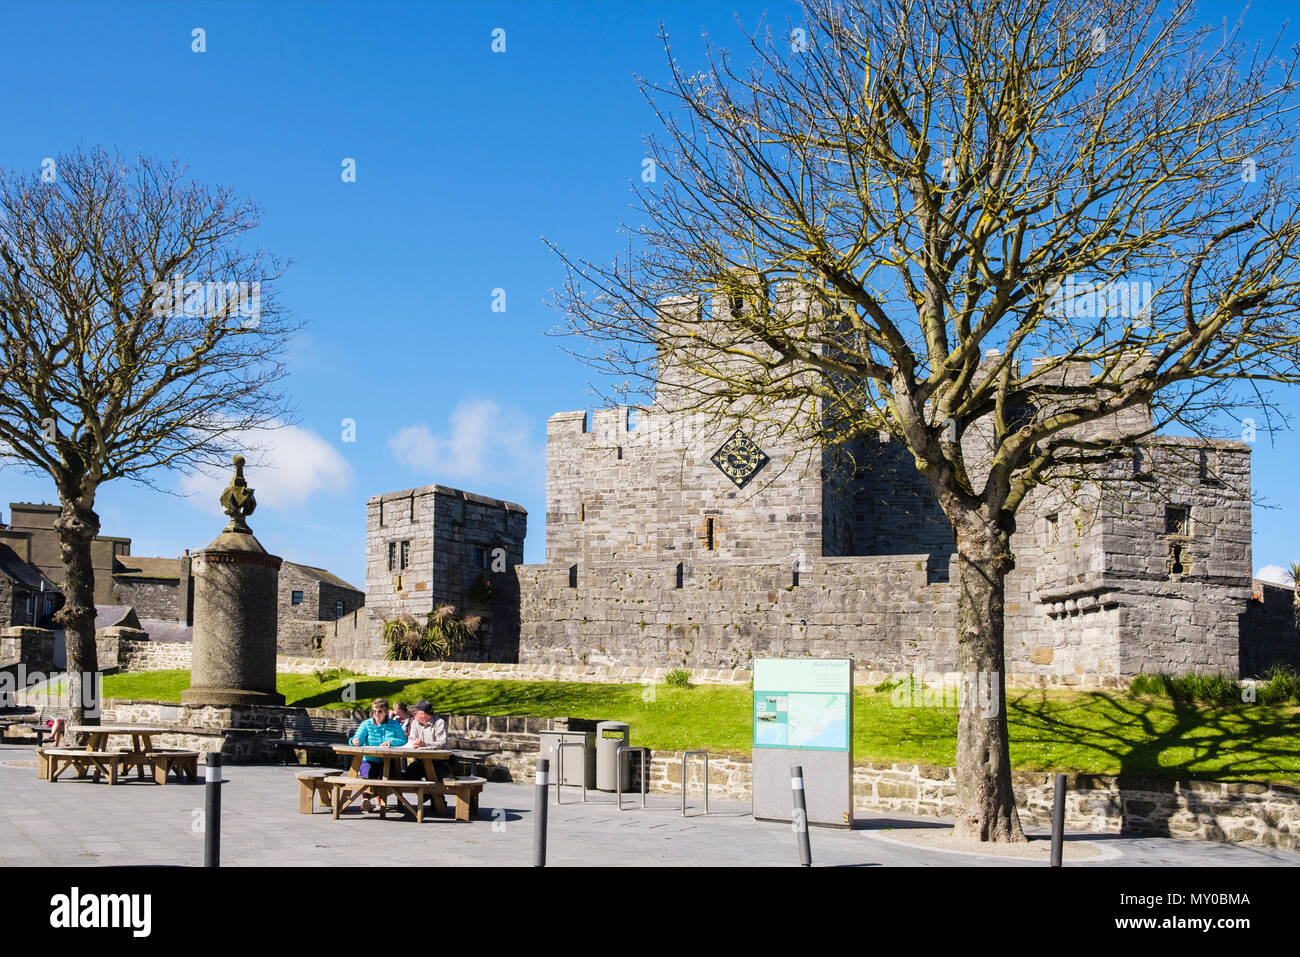 Medieval Castle Rushen in historic old town. Market Square, Castletown, Isle of Man, British Isles Stock Photo